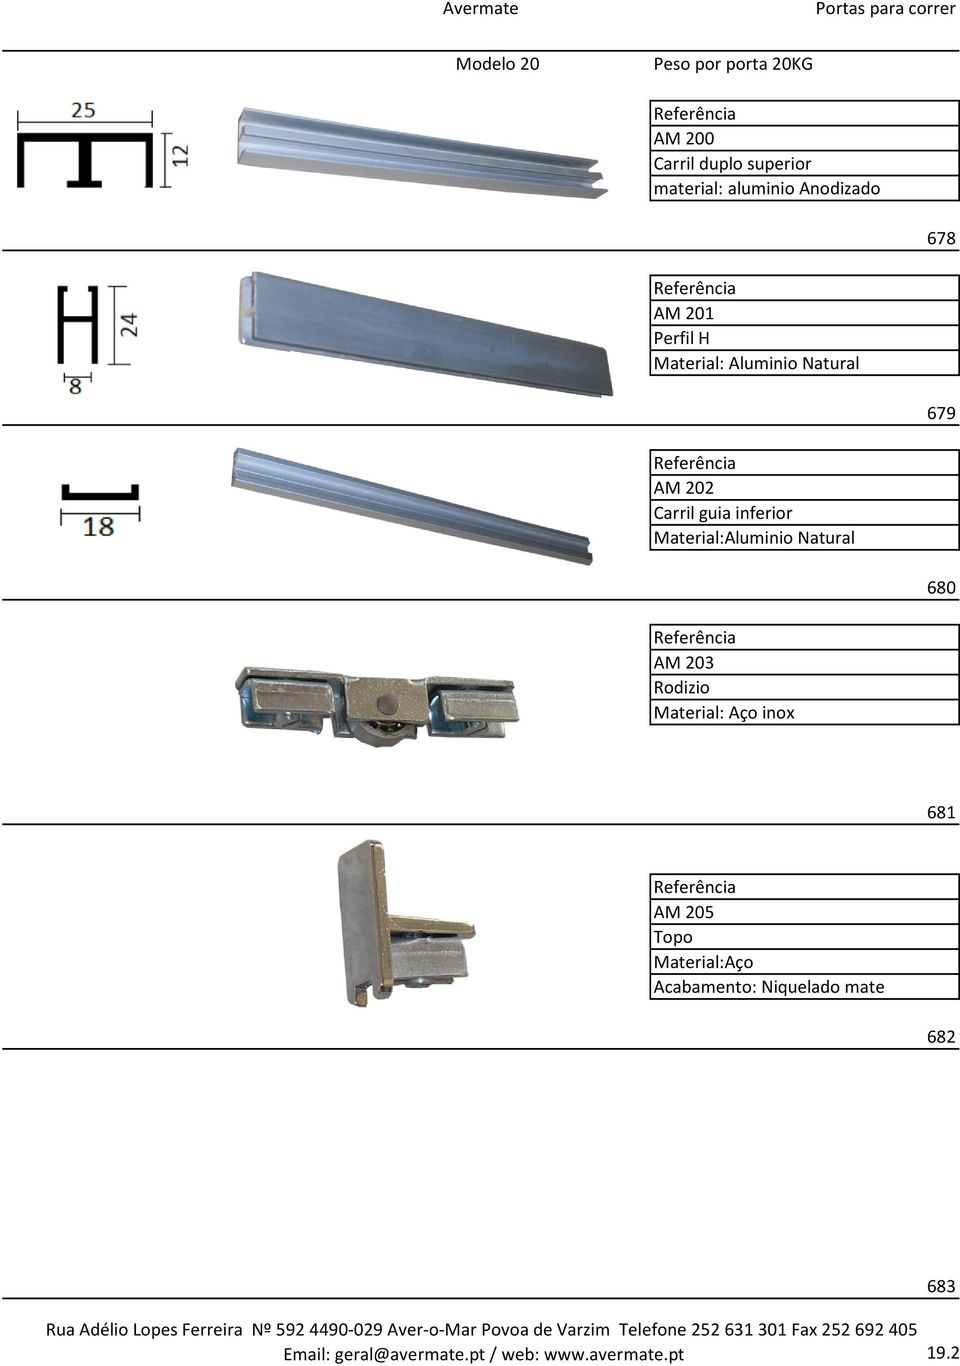 inferior Material:Aluminio Natural 680 AM 203 Rodizio Material: Aço inox 681 AM 205